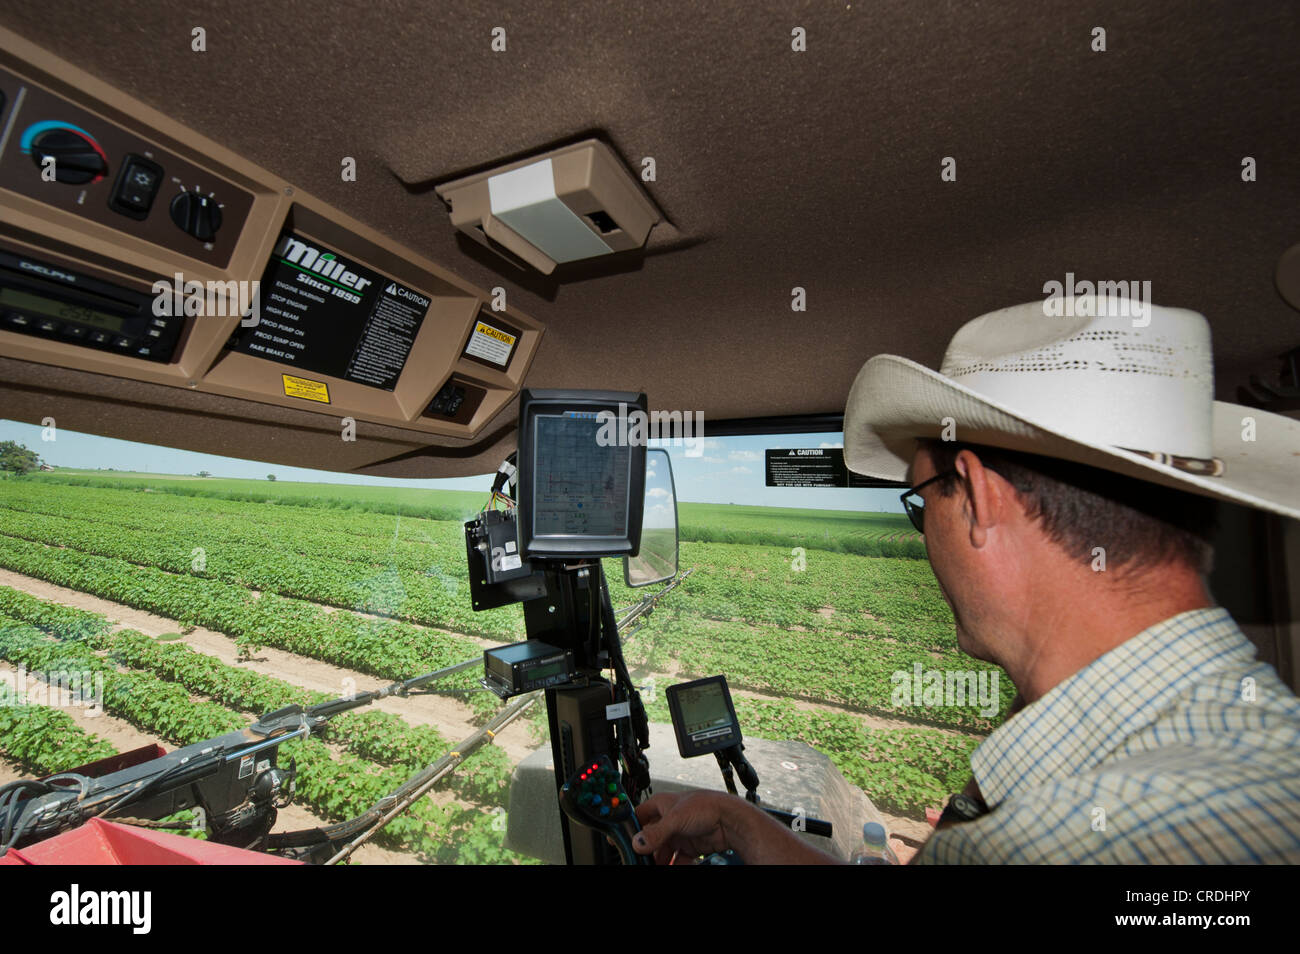 Inside Of A Combine : Farmer inside combine cab using gps and other technology